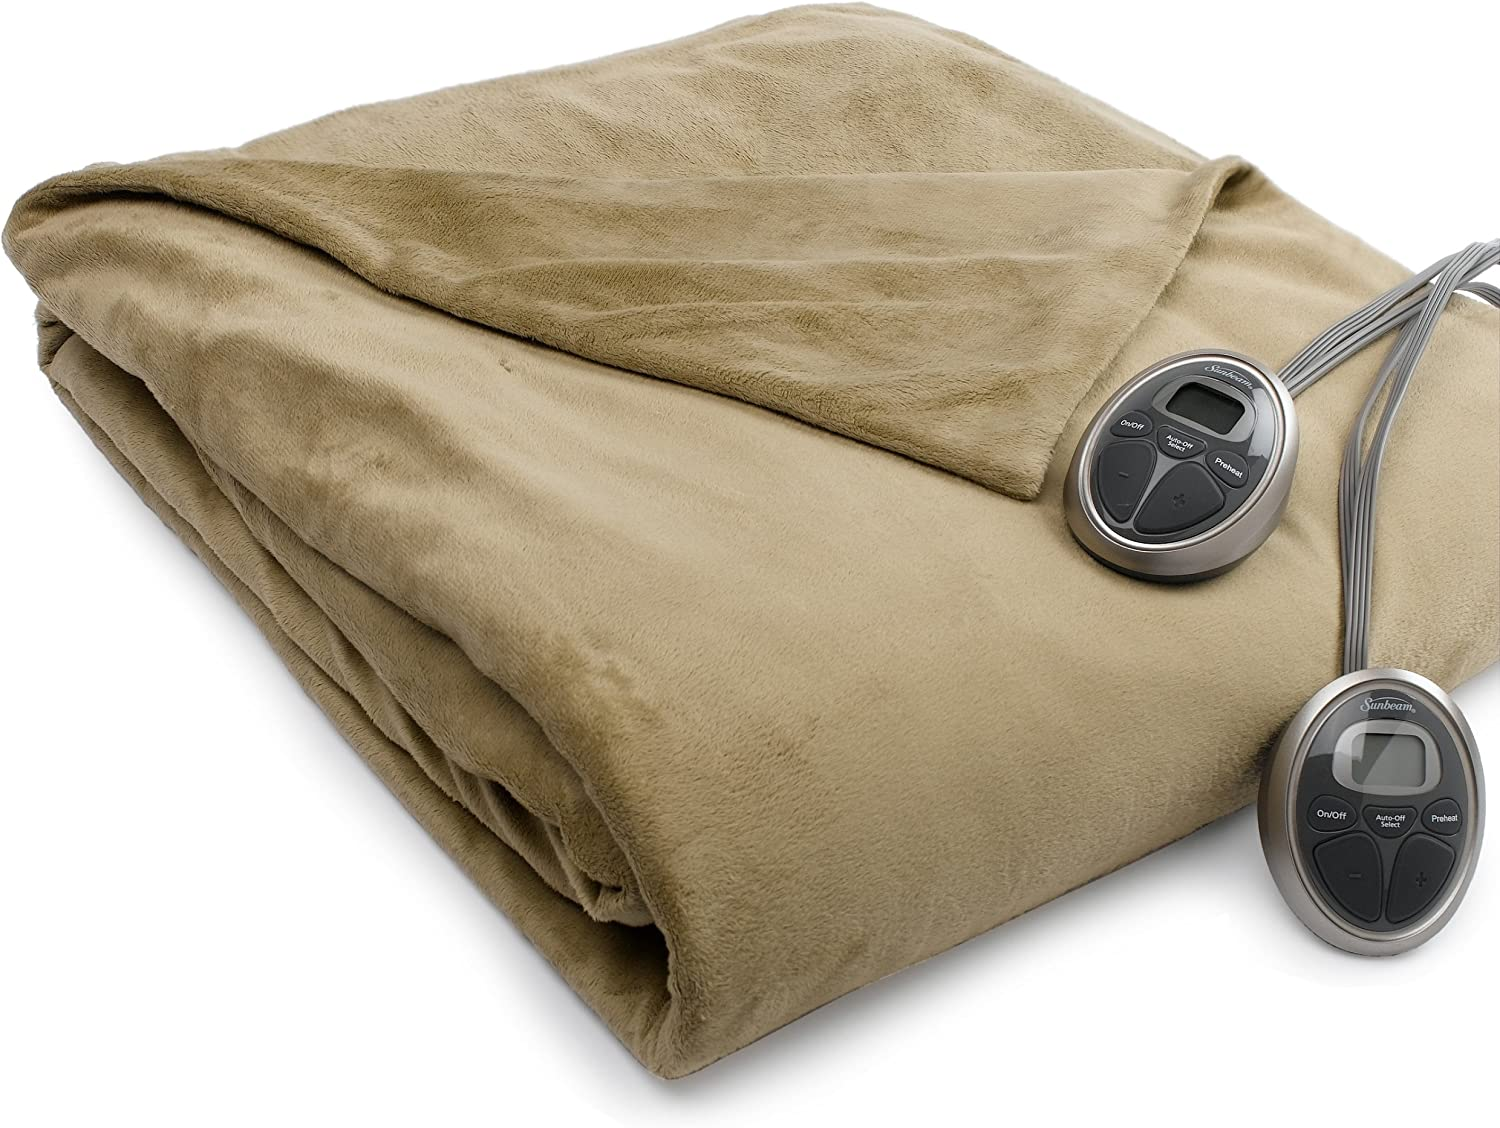 Mail order Sunbeam Camelot Our shop most popular Retreat Queen Blanket Polyester Microfib Heated